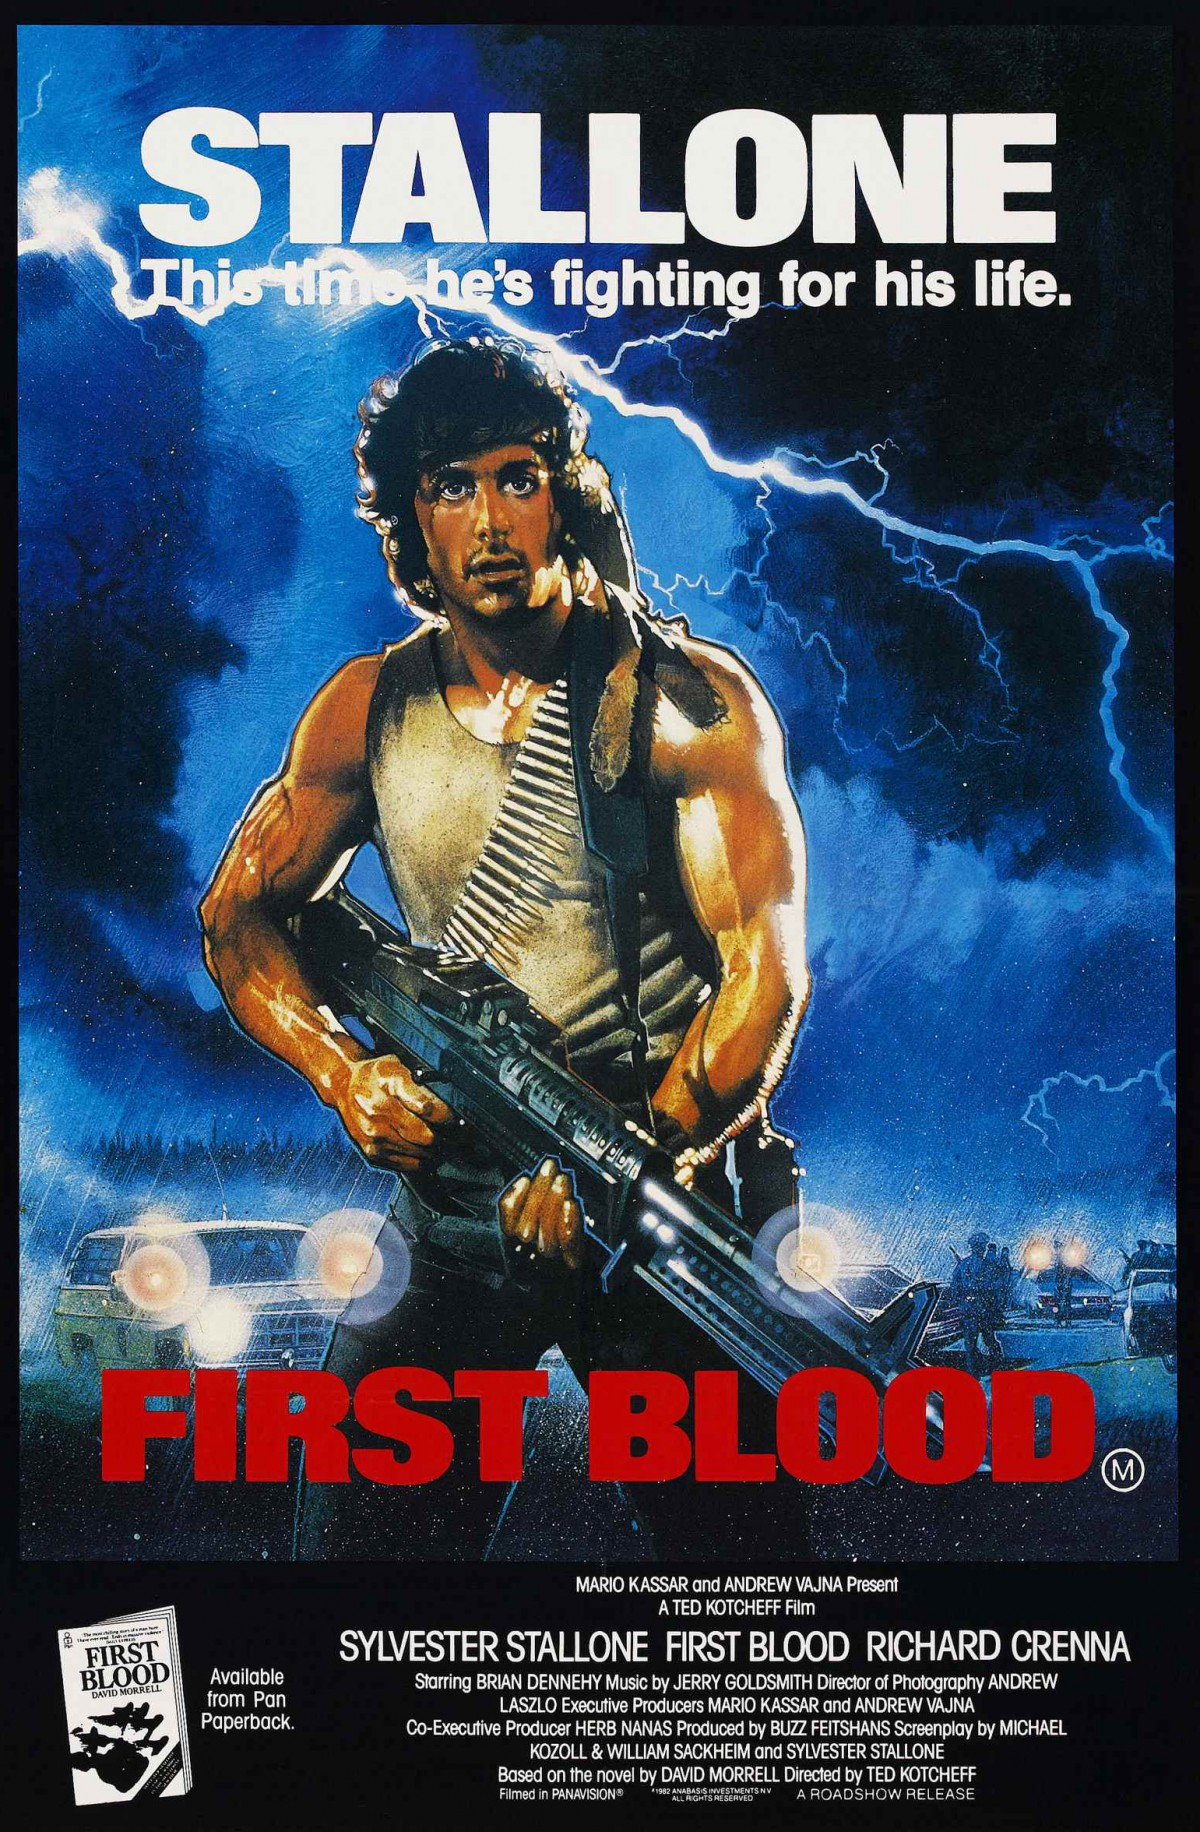 11. First Blood (1982)